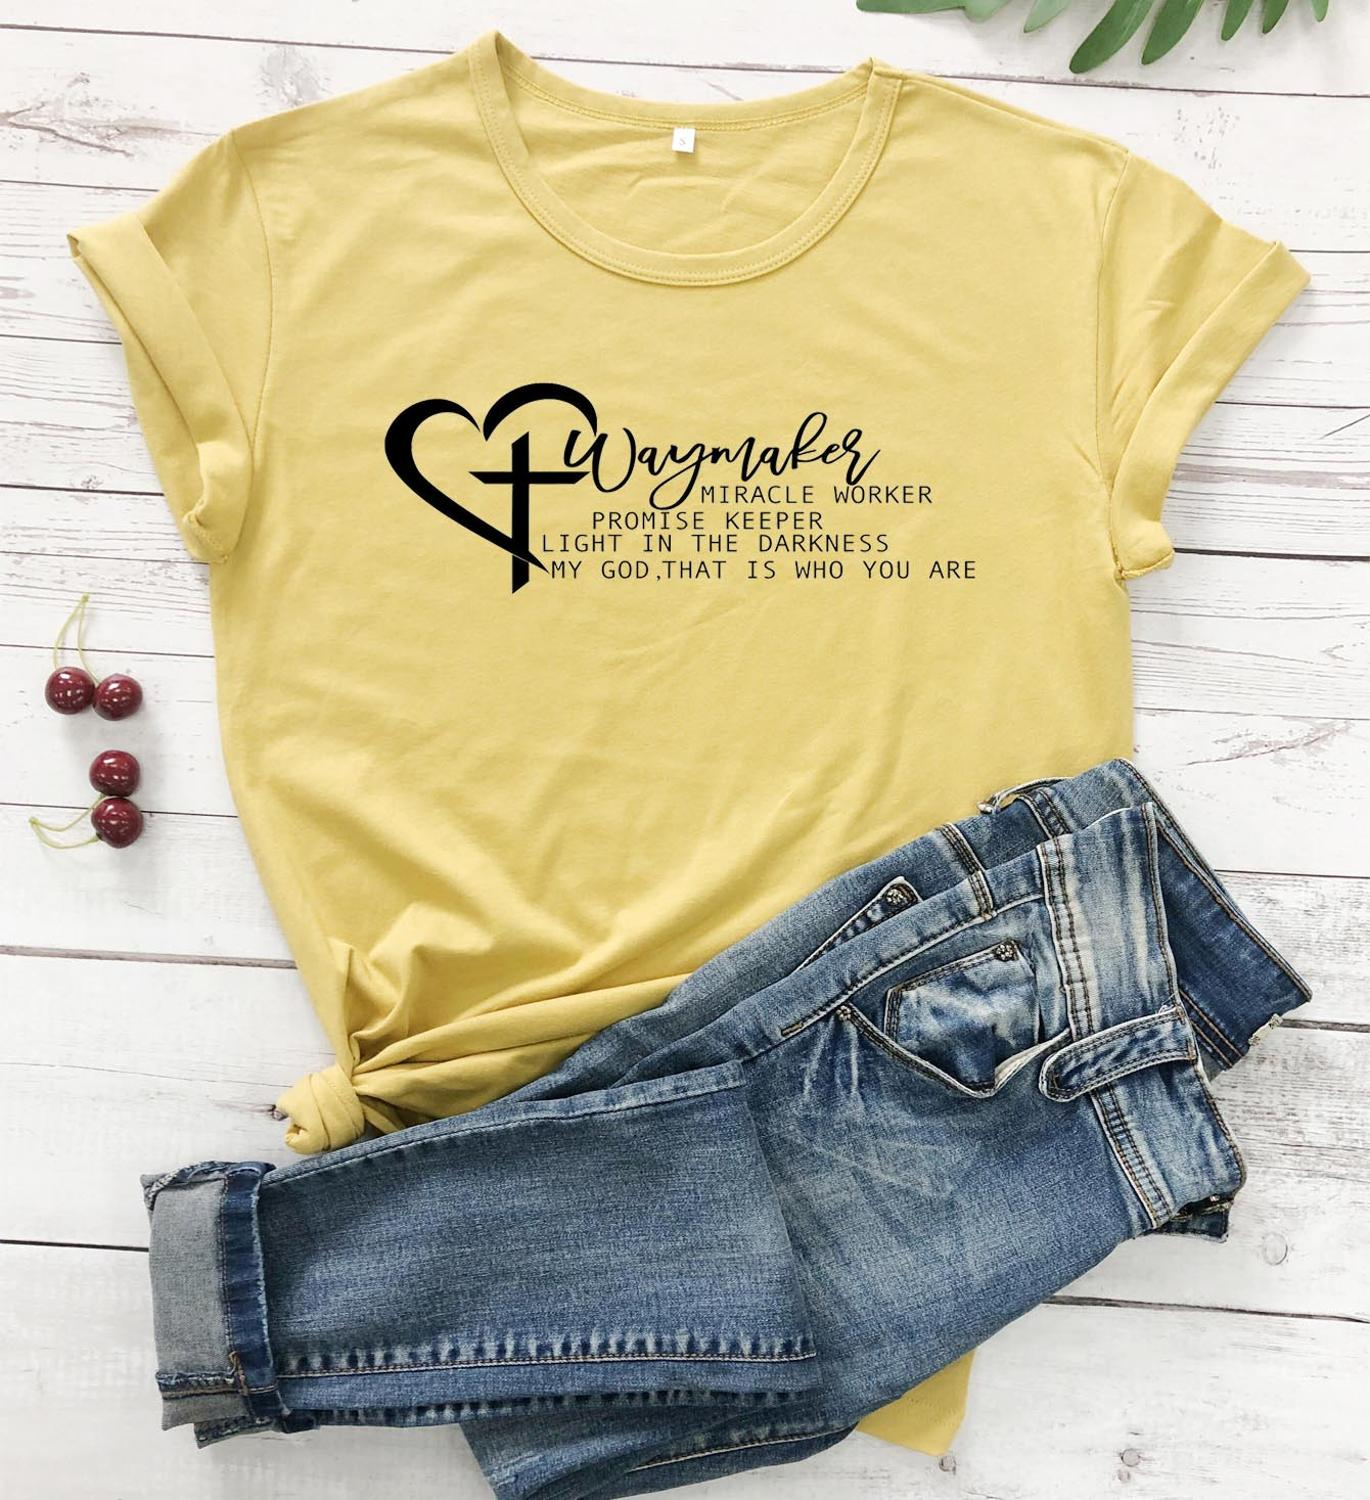 Waymaker Miracle Worker Promise Keeper My God Christian Svg Religion Women T Shirt Heart Aesthetic Cross Christian Tees Gift Top T Shirts Aliexpress